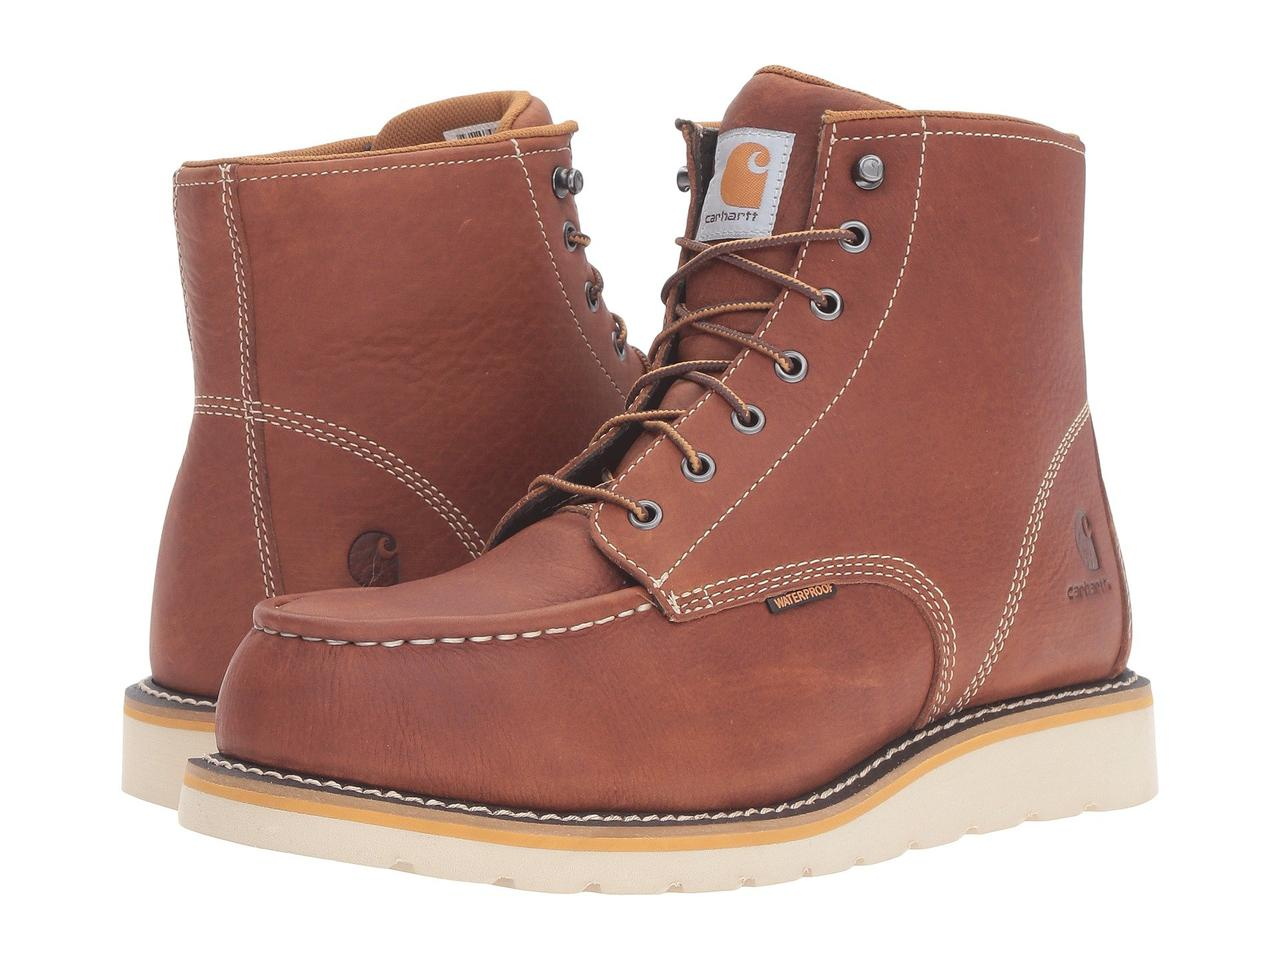 "Ботинки/Сапоги (Оригинал) Carhartt 6"" Steel Toe Waterproof Wedge Boot Tan Oil Tanned Leather"